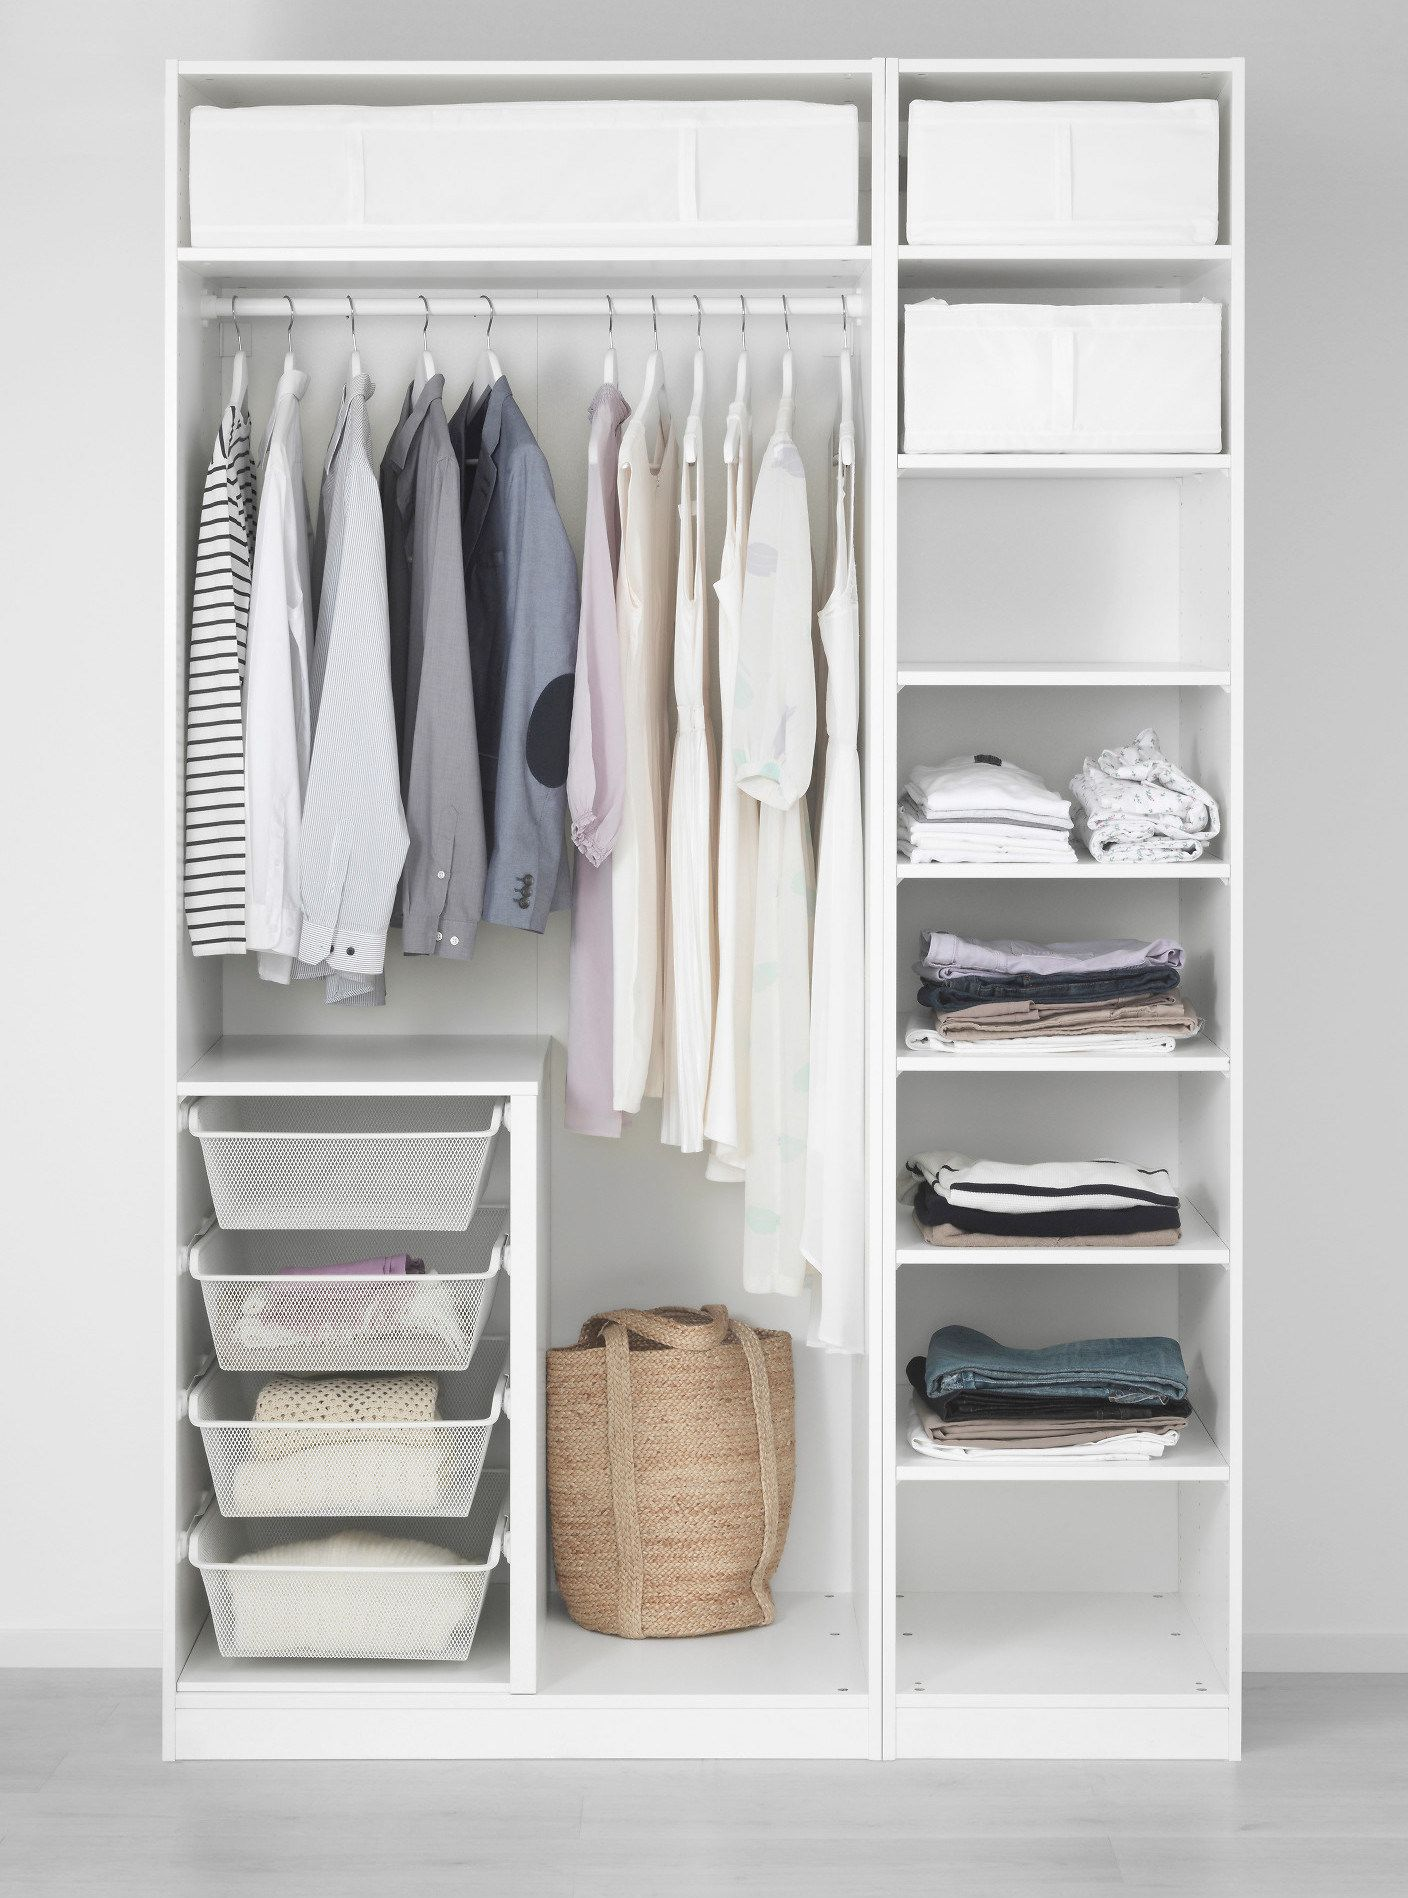 10 Best Closet Systems According To Architects And Interior